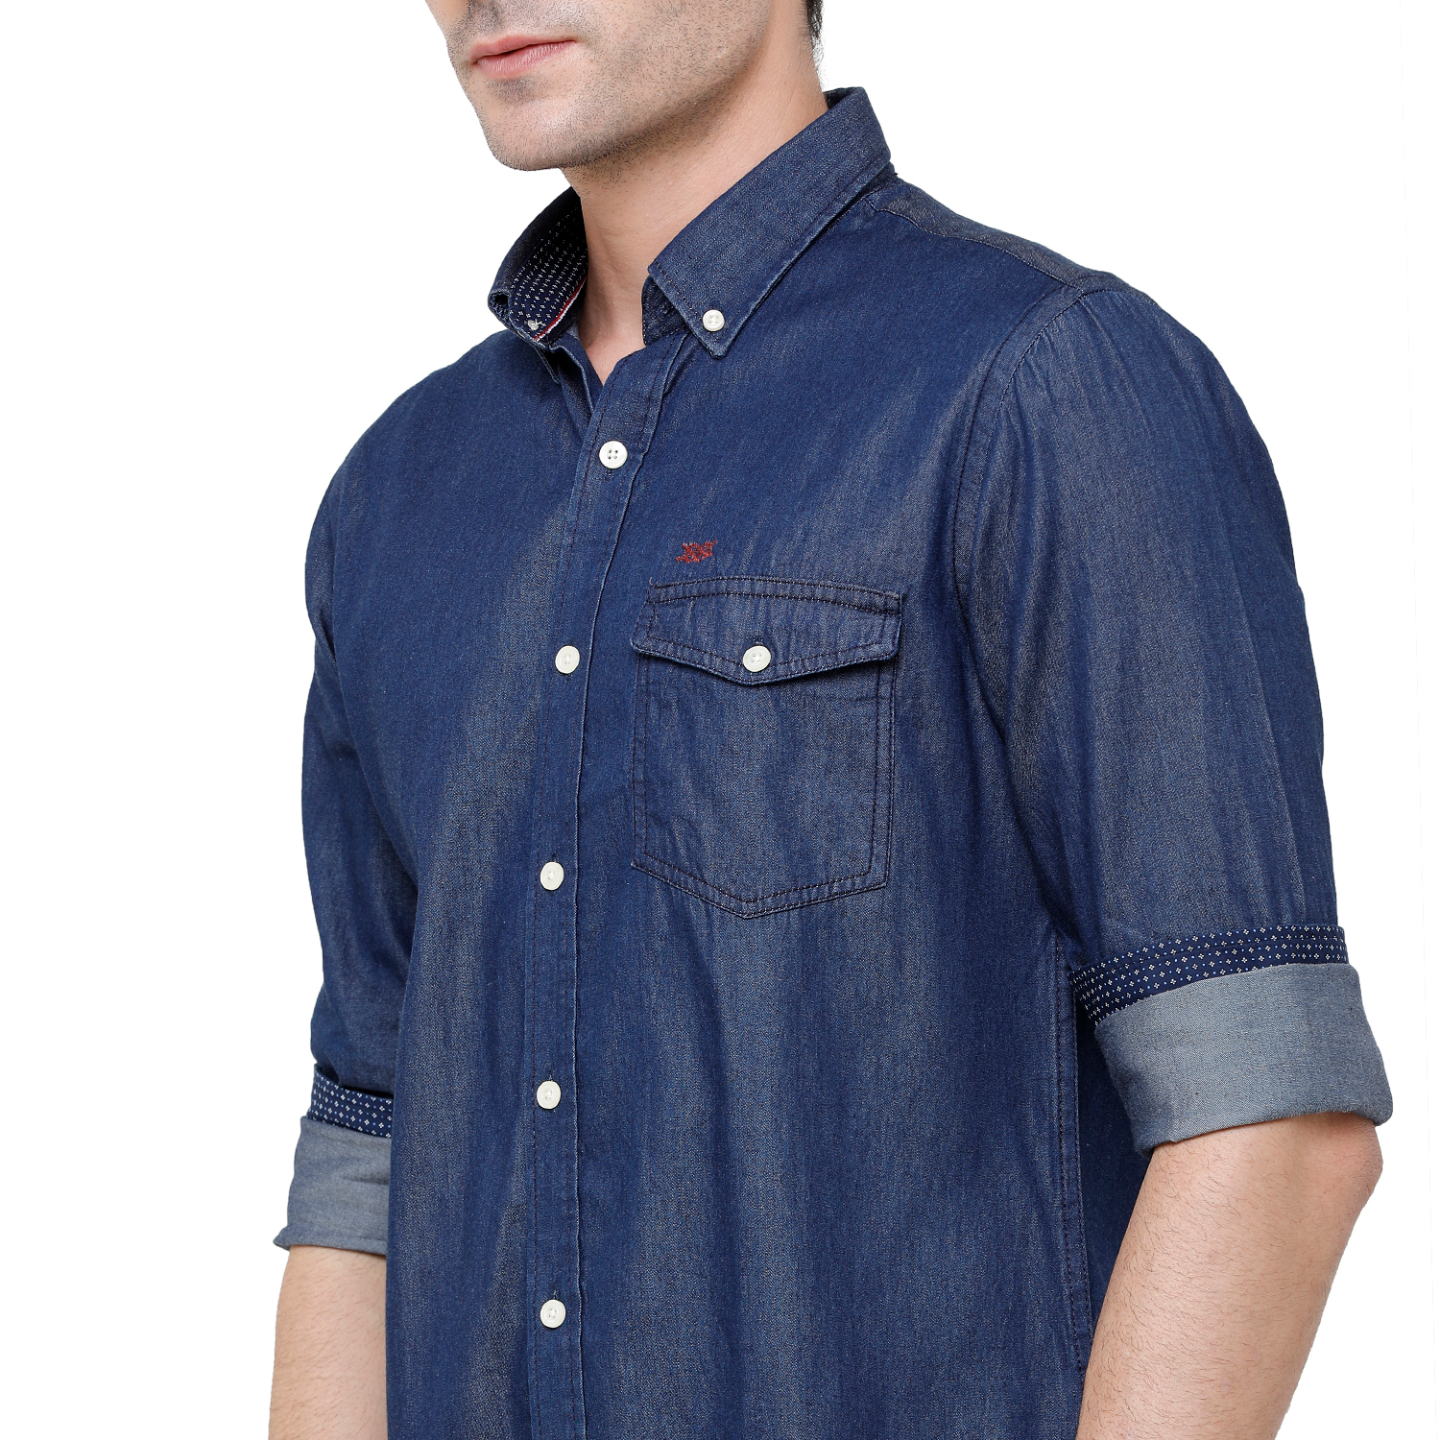 Double Two Mens Long Sleeves 100 Cotton Silky Denim with Single Flap Pockets Shirt Casual Shirt